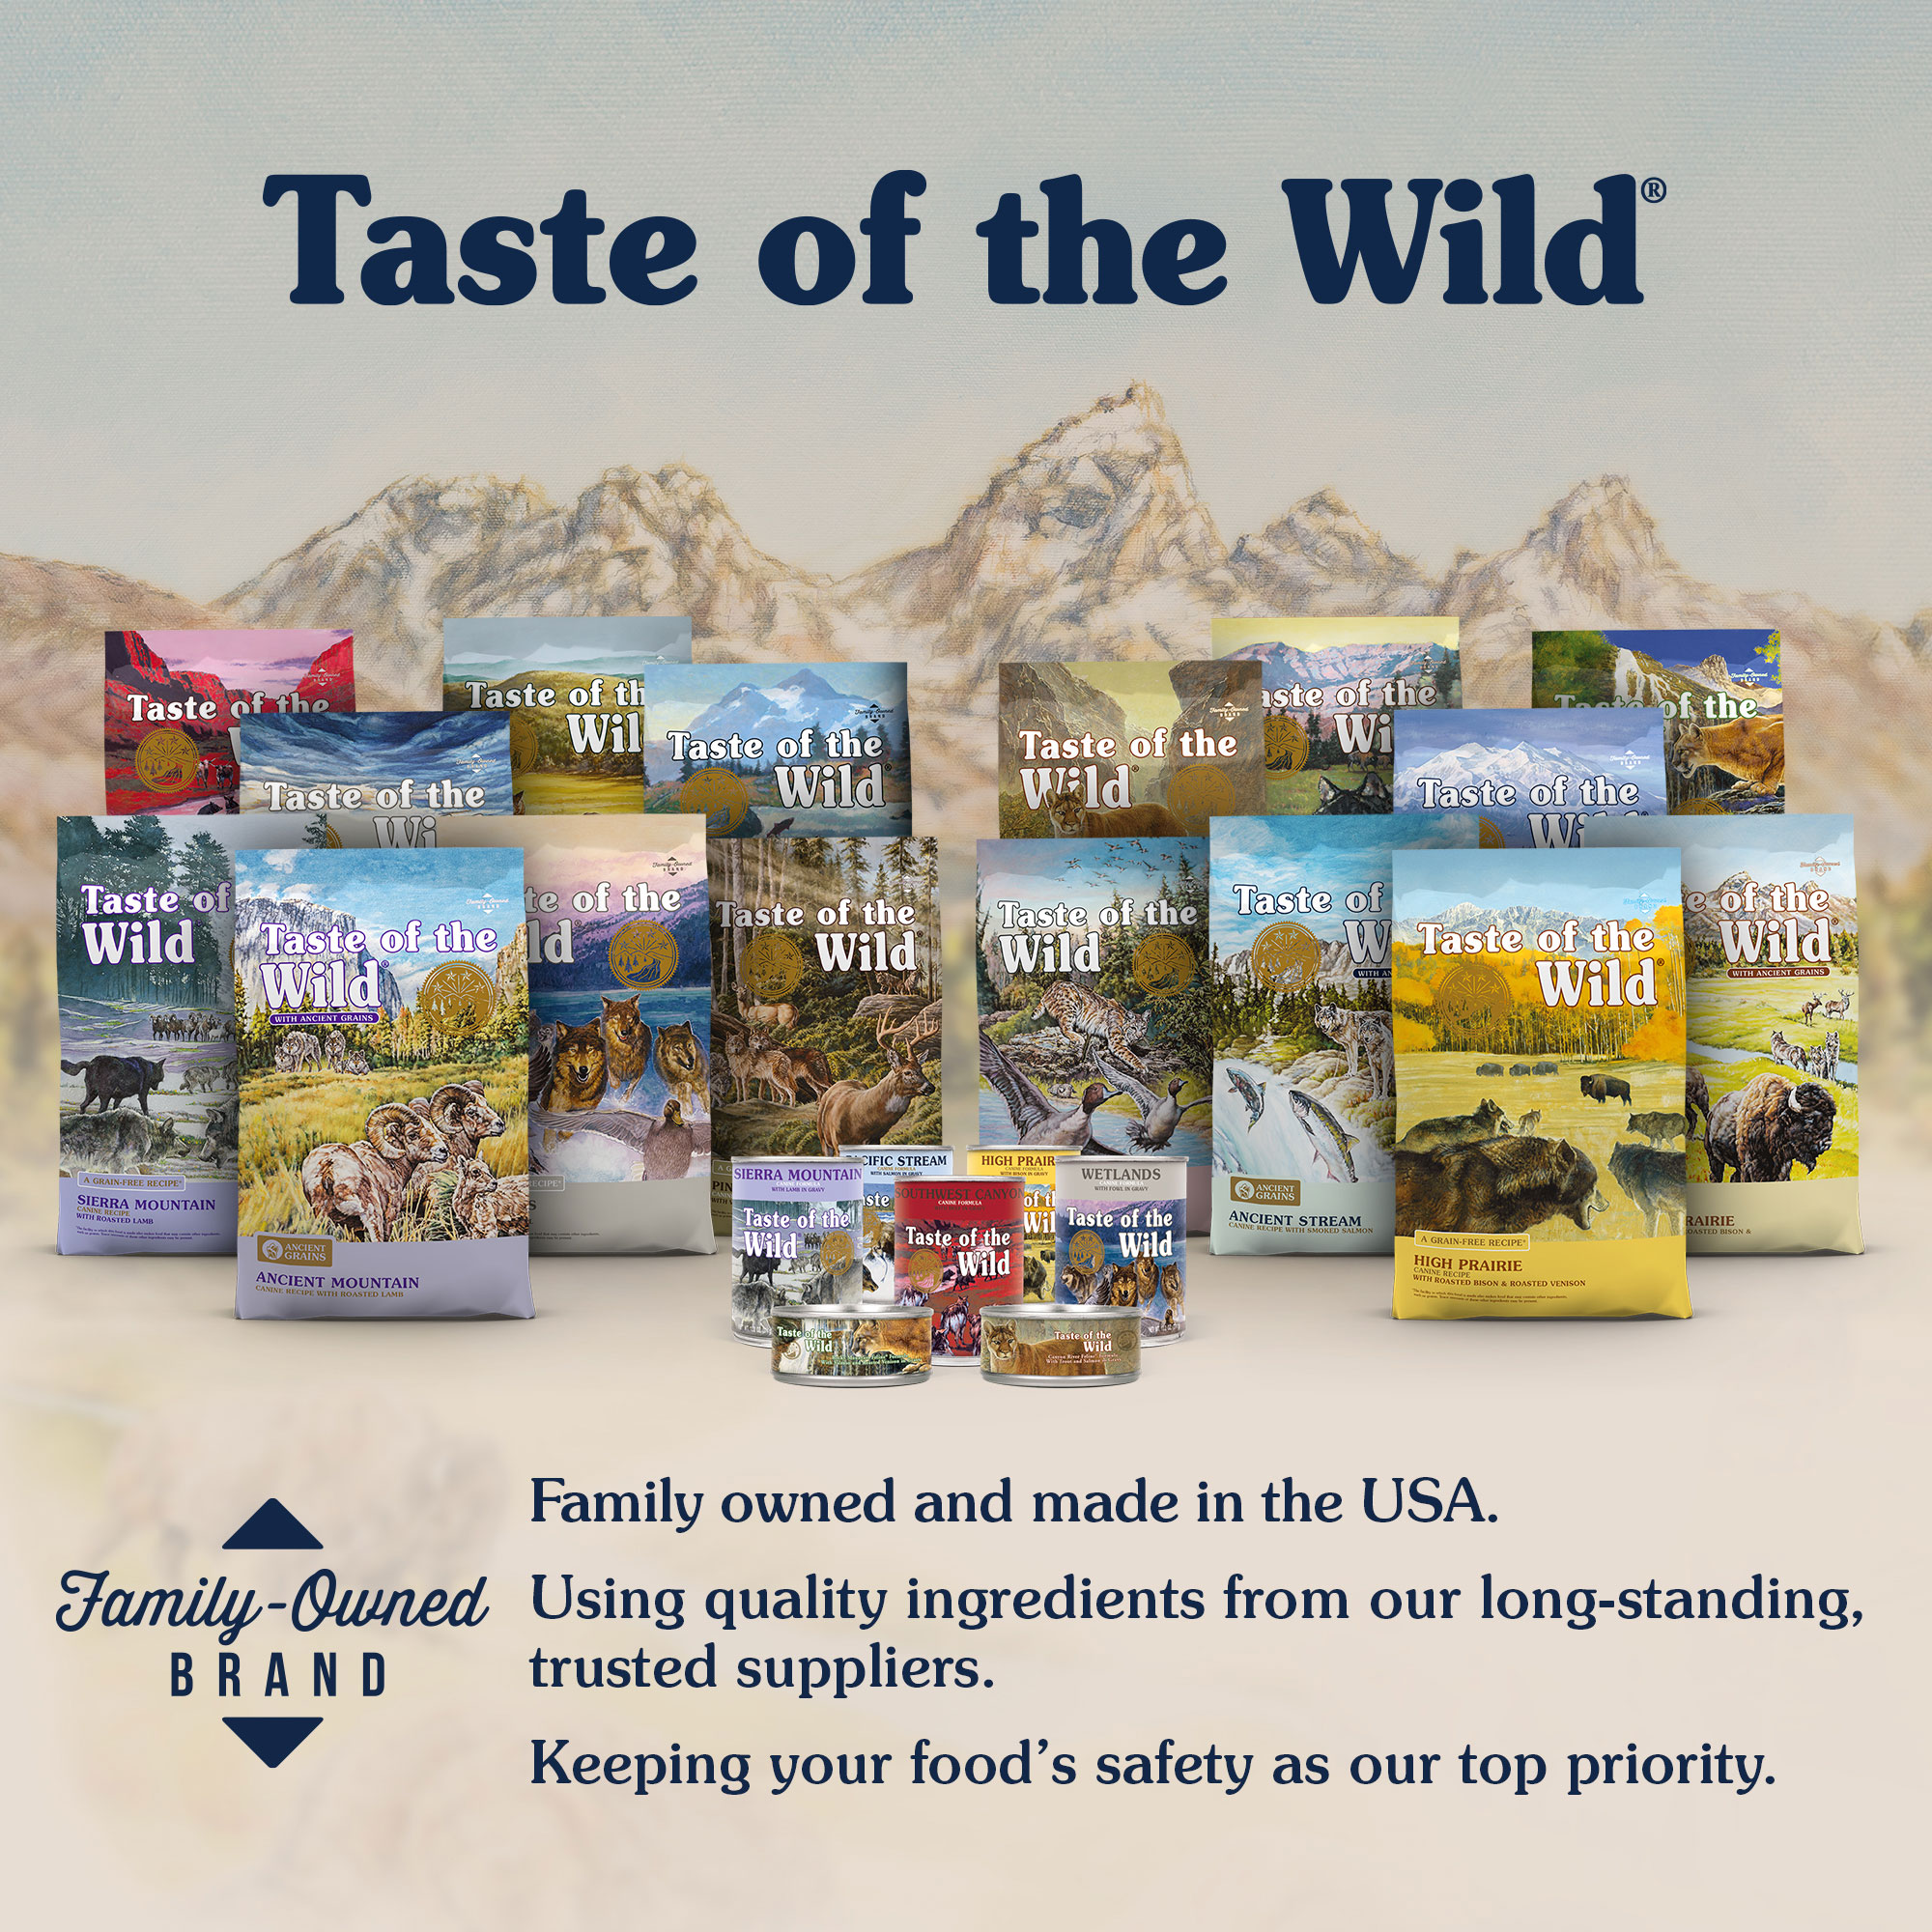 Taste of the Wild — Family owned and made in the USA.